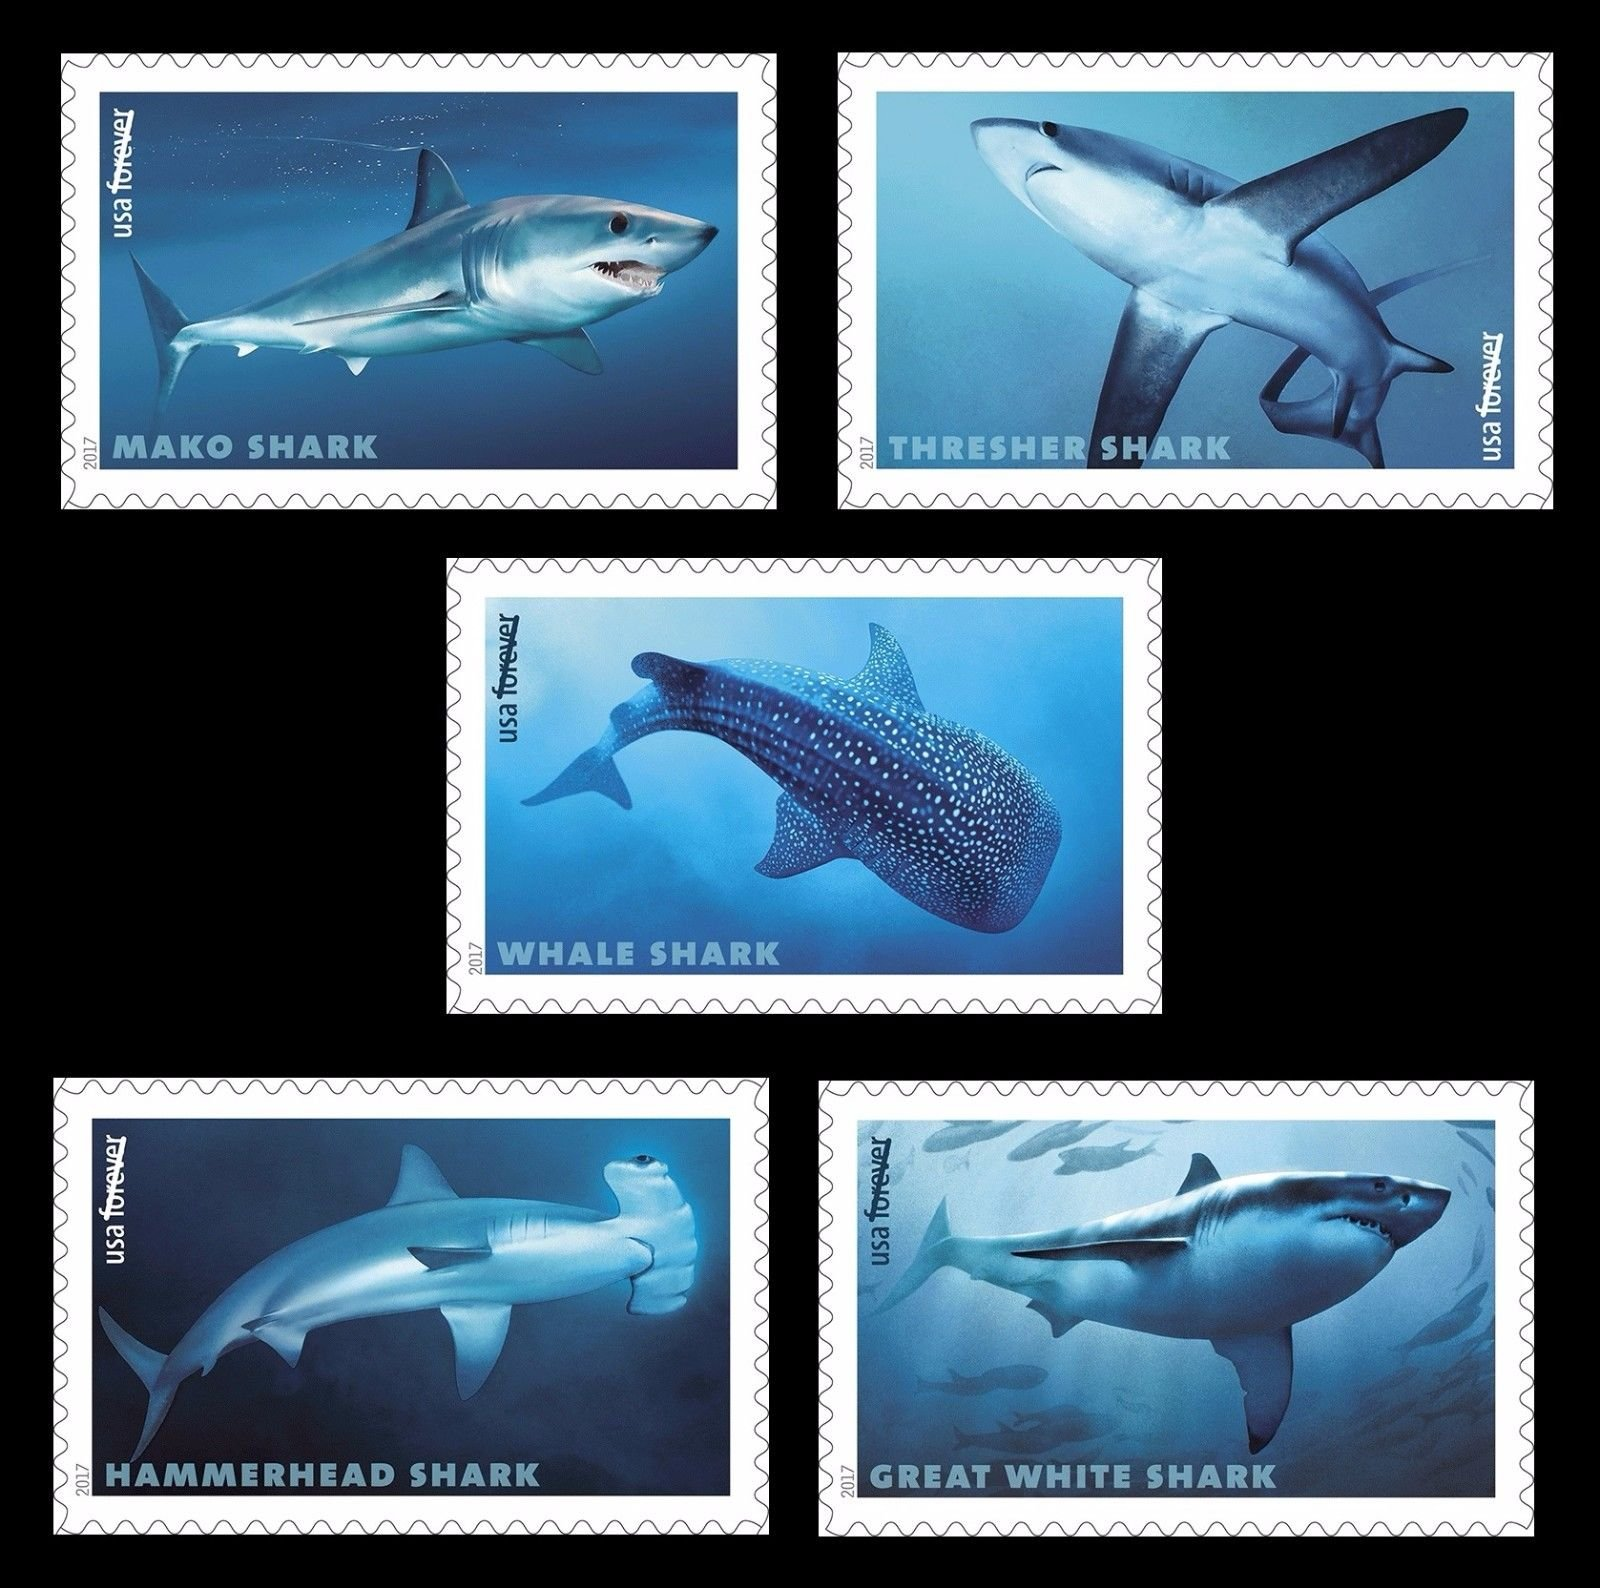 Sharks - USPS Forever Stamps Sheet of 20 - New 2017 Release